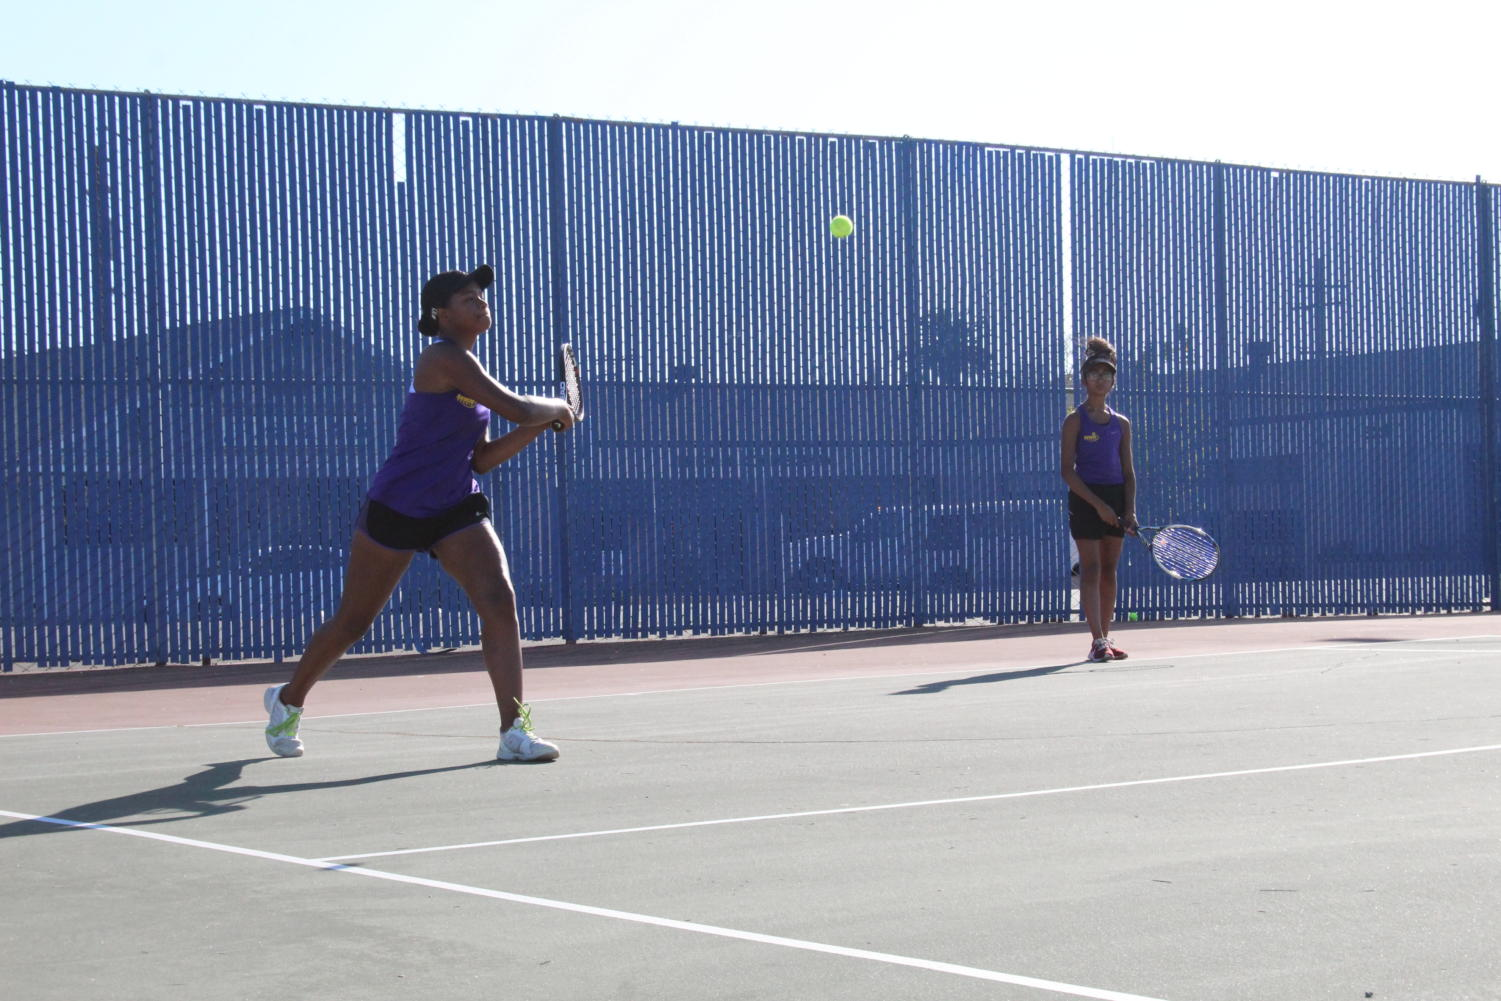 Two players playing tennis